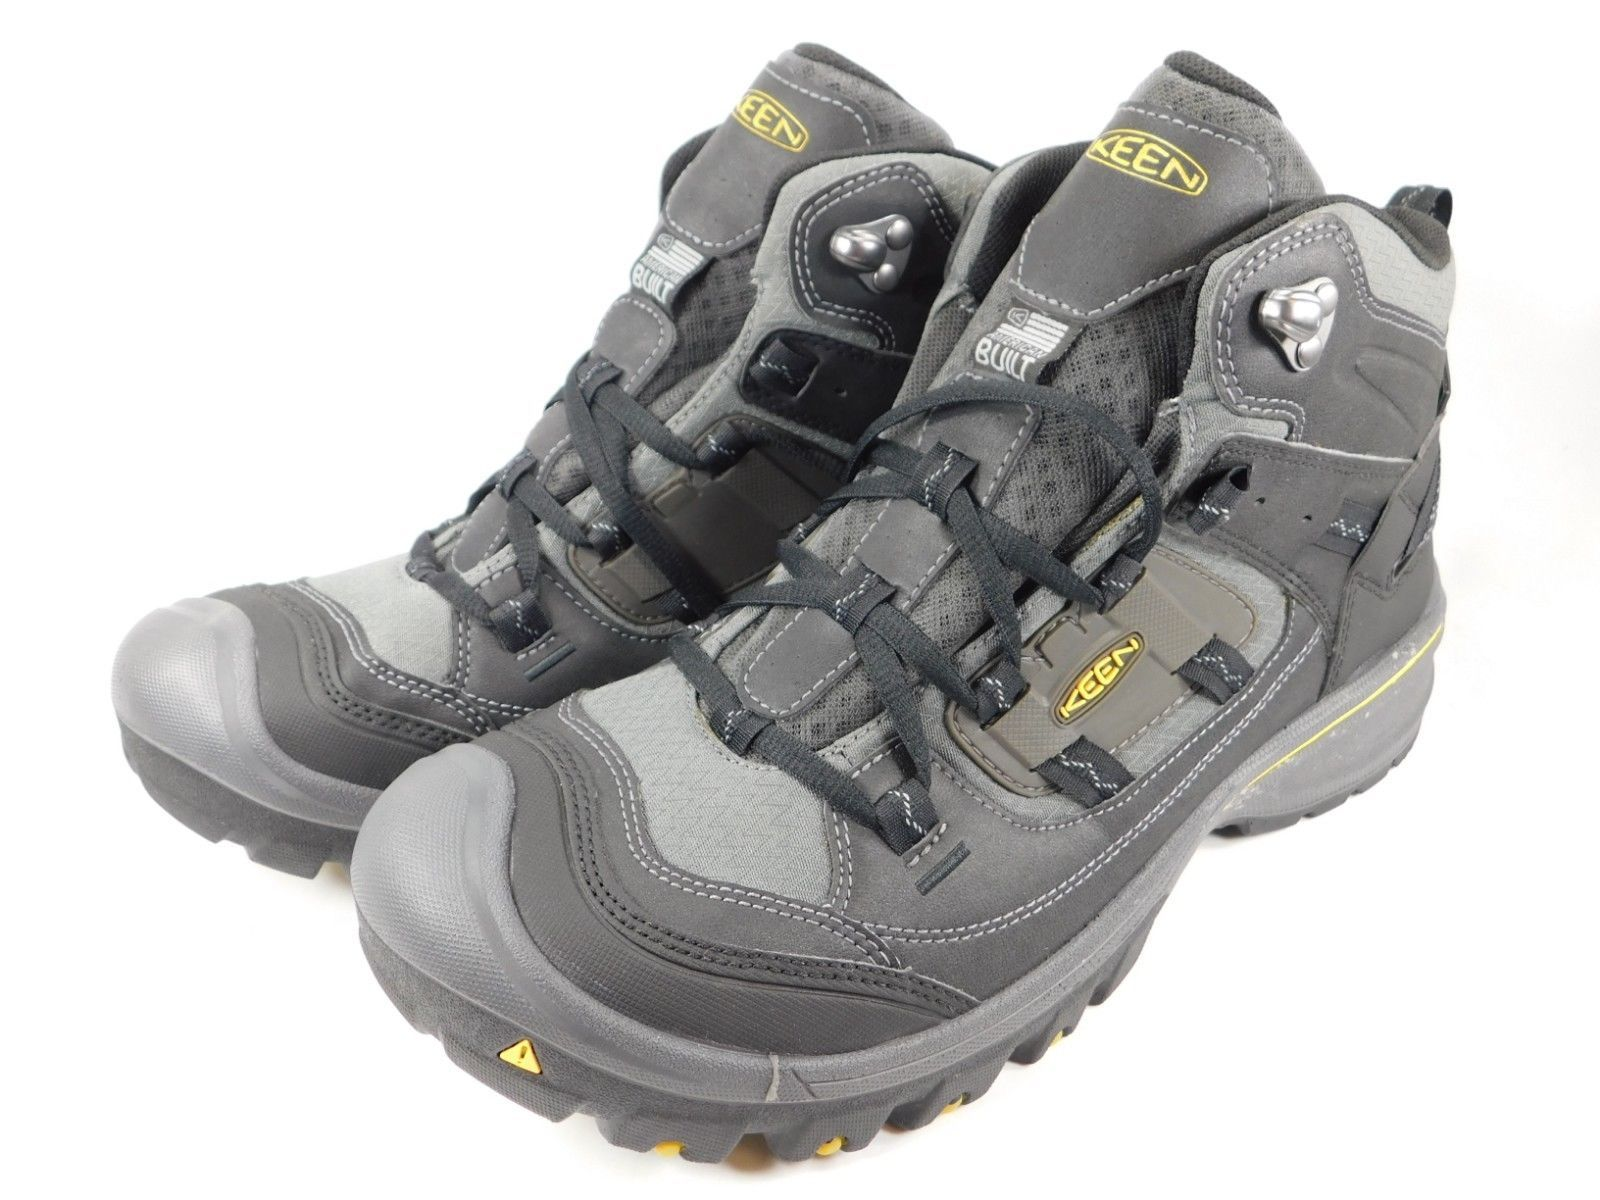 Keen Logan Mid Top Size: US 11.5 M (D) EU 45 Men's Hiking Boots Black 1014004